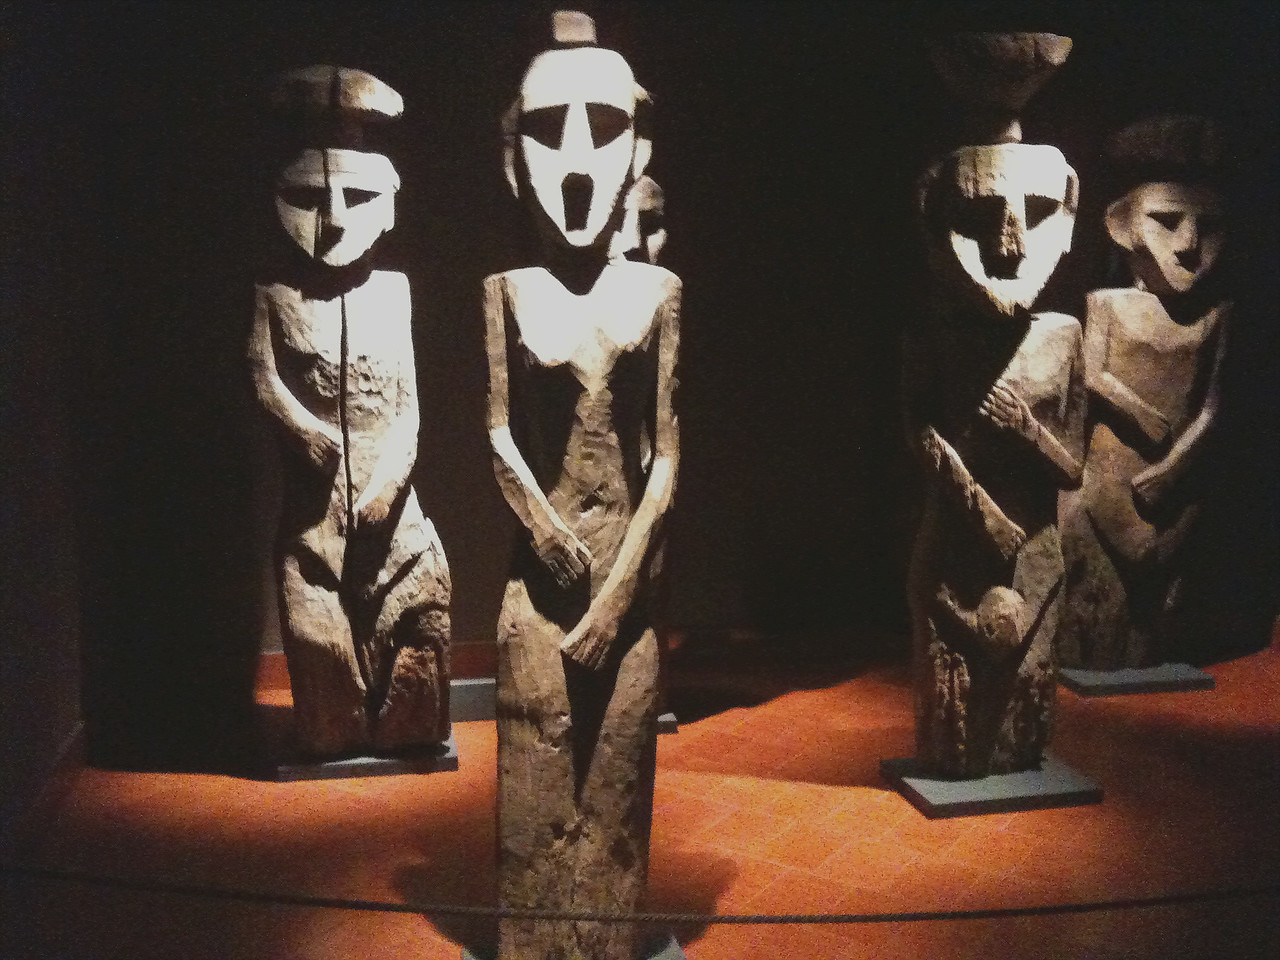 Chlean grave markers